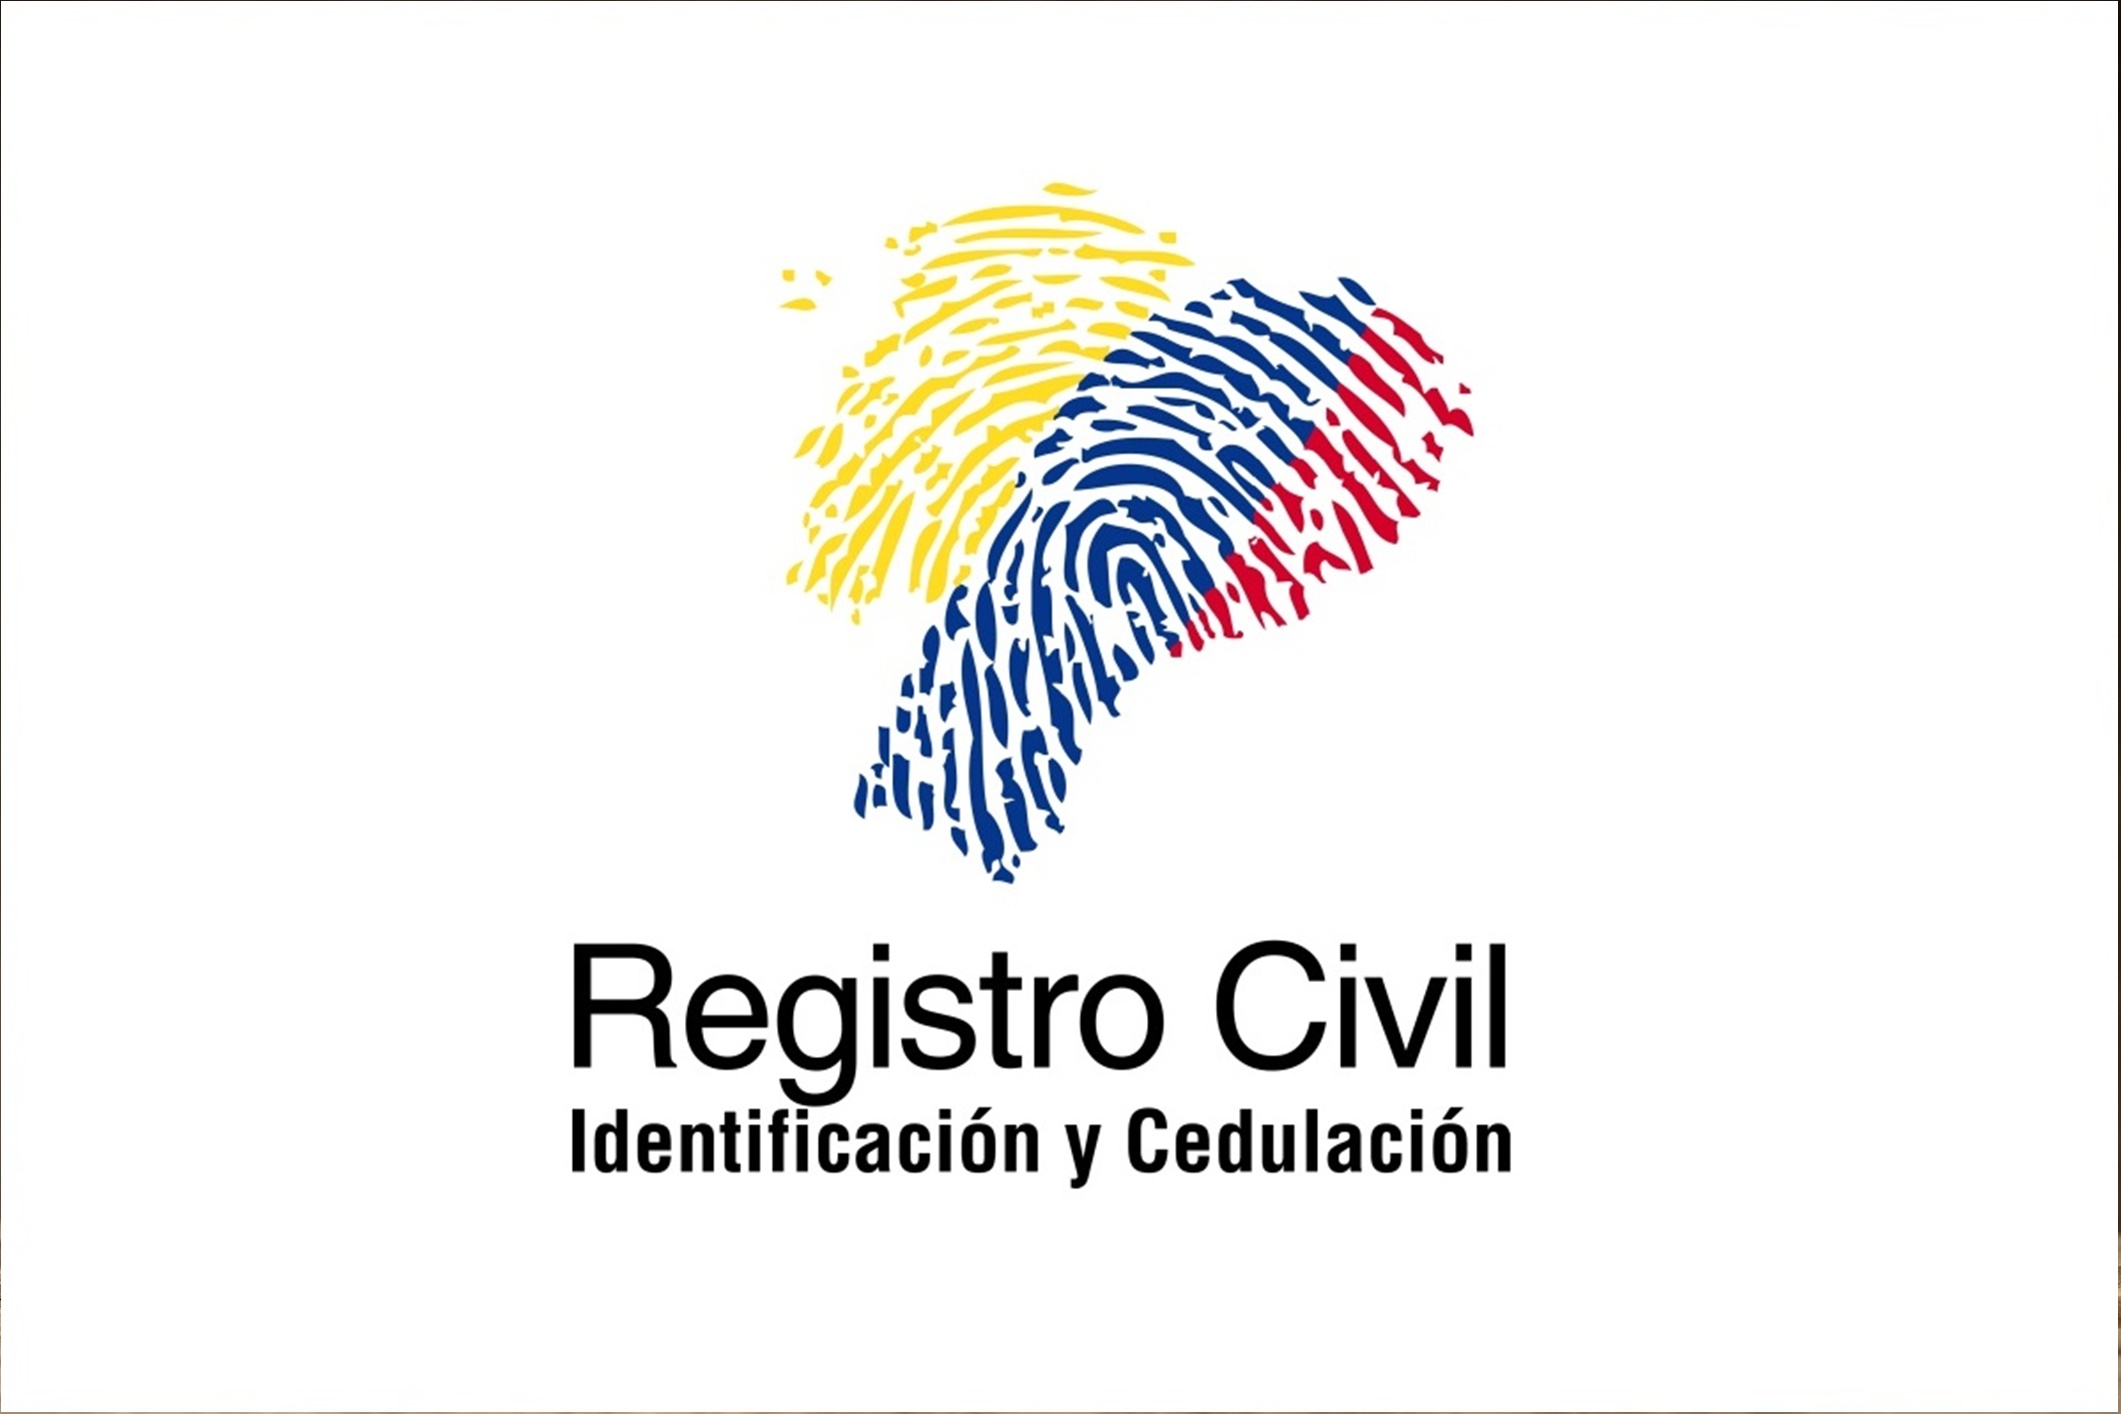 reg-civil-ecuador-logo-text-2